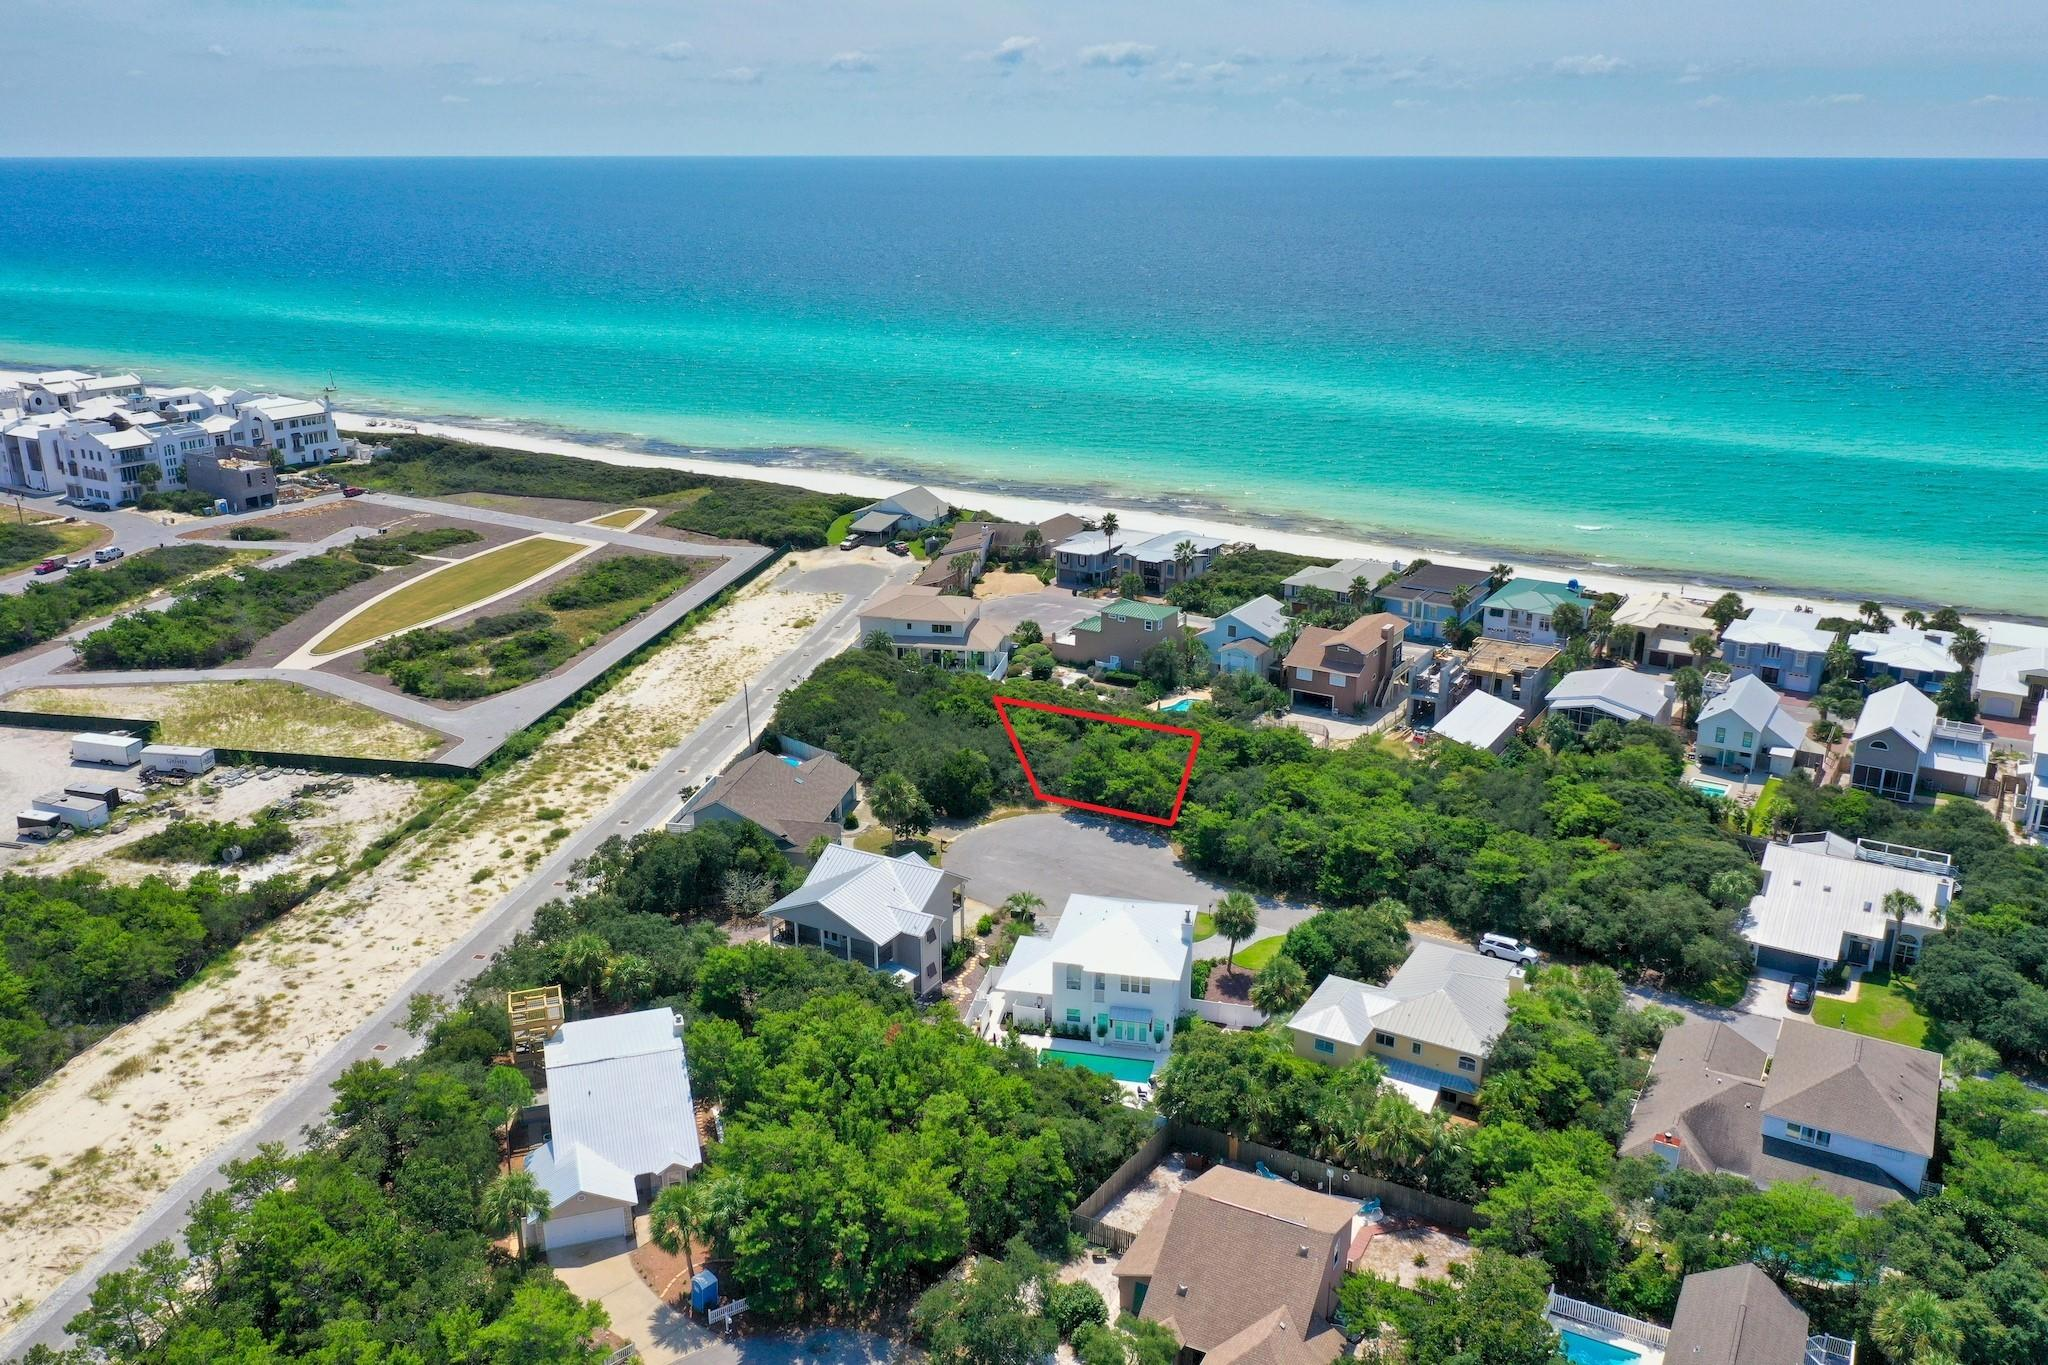 Amazing cul-de-sac lot in a private, non-rental gated Gulf front community of 30A. Sand Cliffs on the Gulf is an exclusive community bordering Alys Beach and the beautiful Gulf of Mexico. With low HOA fees and no build out time, this is the perfect opportunity to build your dream beach home! Gulf front lots are restricted from building higher than 18.5 ft, however Lot 12 can build up to 30 ft high which means you can still enjoy Gulf views from a higher floor! This large lot sits high and dry on the bluff, the perfect place to build your 2.5 story dream beach home with Gulf views & lush surroundings! Sand Cliffs features two deeded beach accesses offering 1300+ ft of pristine beach along the beautiful emerald green & crystal blue waters of the Gulf of Mexico. This is a prime lot location! You will be within 1/2 a mile of the beautiful white sand beaches and there is a walkway located on the same street just steps outside of your door that leads to the private beach boardwalk. Sand Cliffs on the Gulf offers a peaceful setting for private homeowners, with no thru traffic nor crowded beaches. Sand Cliffs is one of the highest elevations on the Gulf of Mexico along Scenic Hwy 30A. Lot 12 sits high on the bluff with miles of panoramic views, both west and east. Being south of 30A and nearby Alys and Rosemary Beach means you are just a short walk or bike ride away from all the attractions that the desired east end of 30A has to offer, yet you can relax and enjoy the privacy of being tucked away in a serene, non-rental, beachfront community. You are also very close to The Hub 30A which offers world class live music, family friendly movie night, sports on the big screen outdoors and great dining, galleries and shopping. Sand Cliffs on the Gulf is located amid Florida's finest beach communities, restaurants and recreational activities, so do not miss out on this incredible opportunity to have quick access to it all! Build your private oasis today.